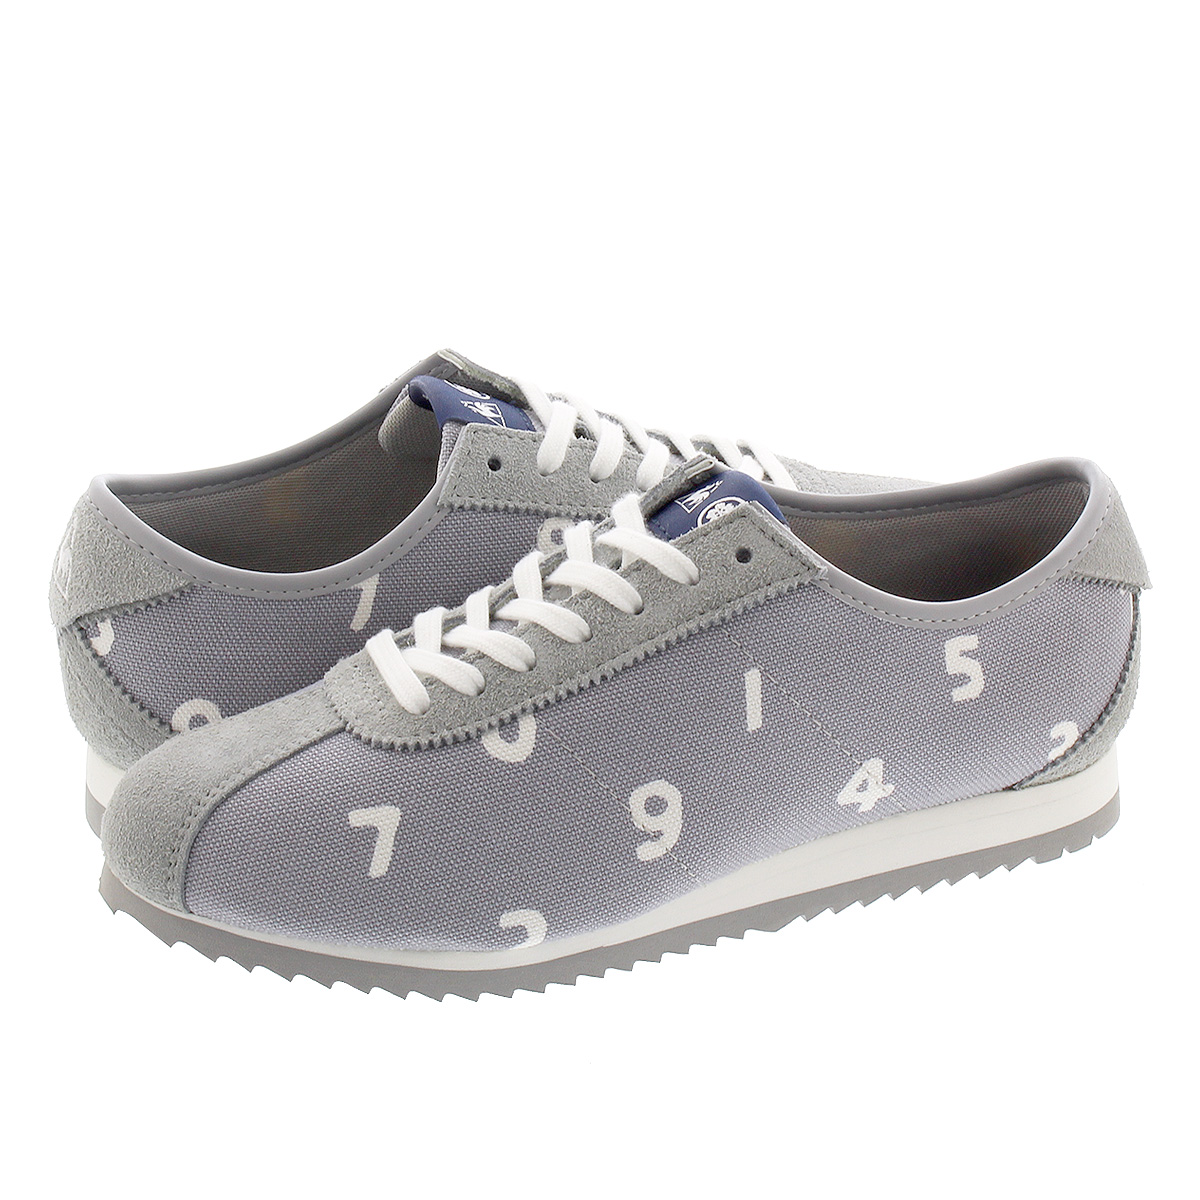 le coq sportif MONTPELLIER JP SOUSOU 【十数】【SO-SU-U】【MADE IN JAPAN】 ルコック スポルティフ モンペリエ JP ソウソウ WHITE qy1pjc08sh